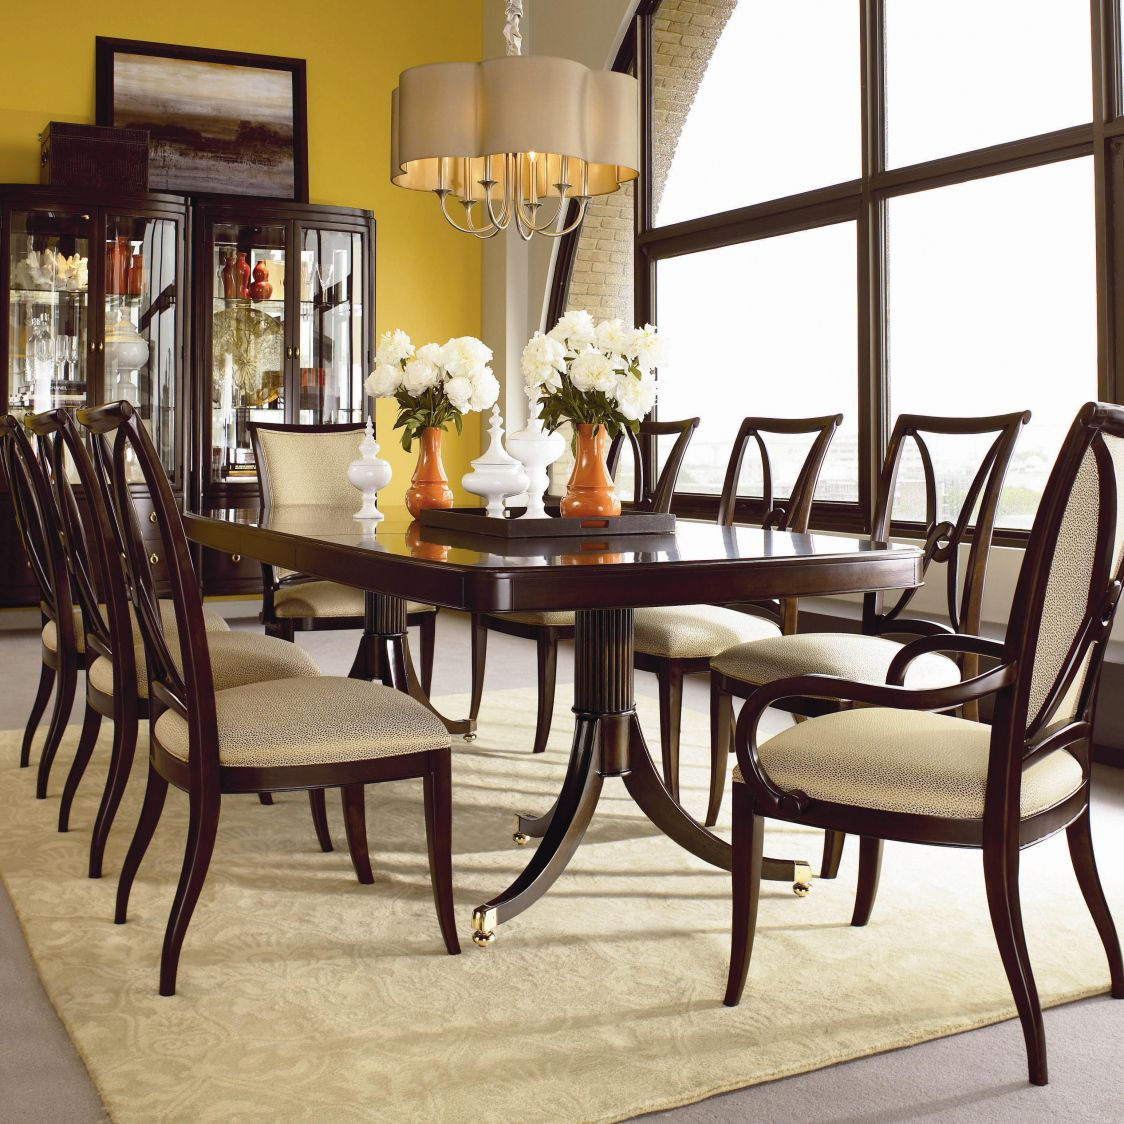 Thomasville Dining Room Sets Discontinued   Cool Furniture Ideas Check More  At Http:// Photo